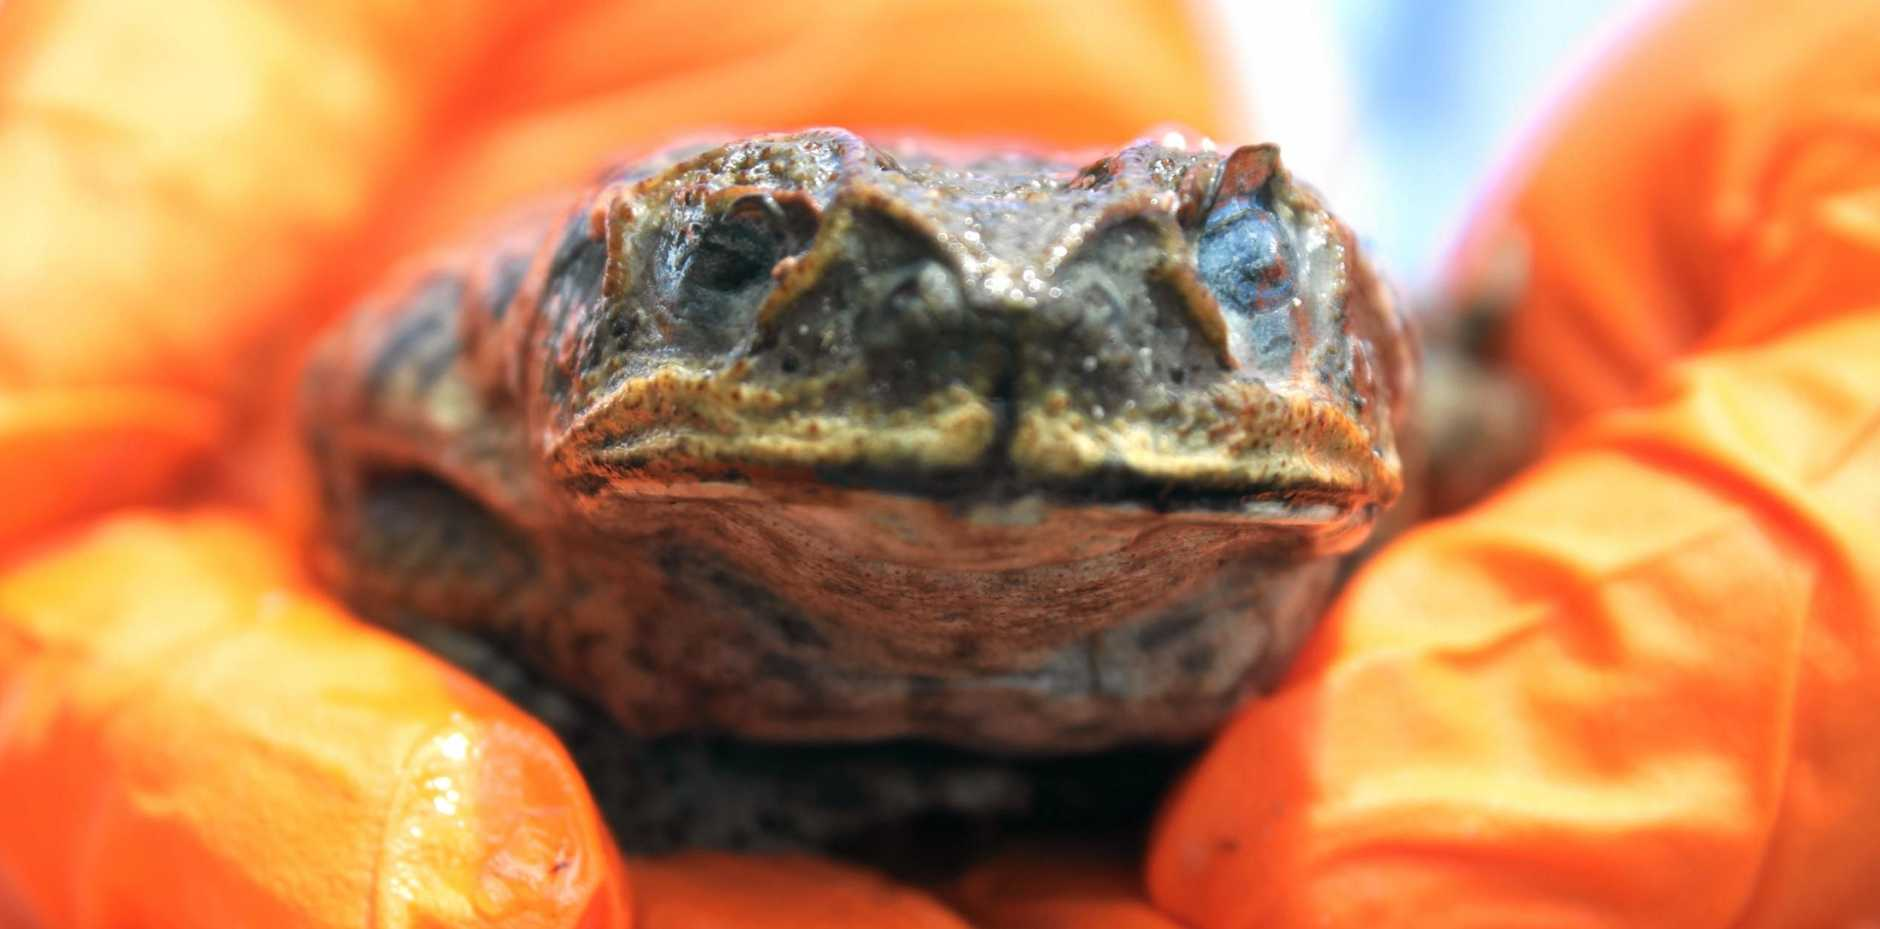 UNWELCOME VISITOR: Council officers suspect this cane toad hitched ride to town after it was discovered at the showgrounds.